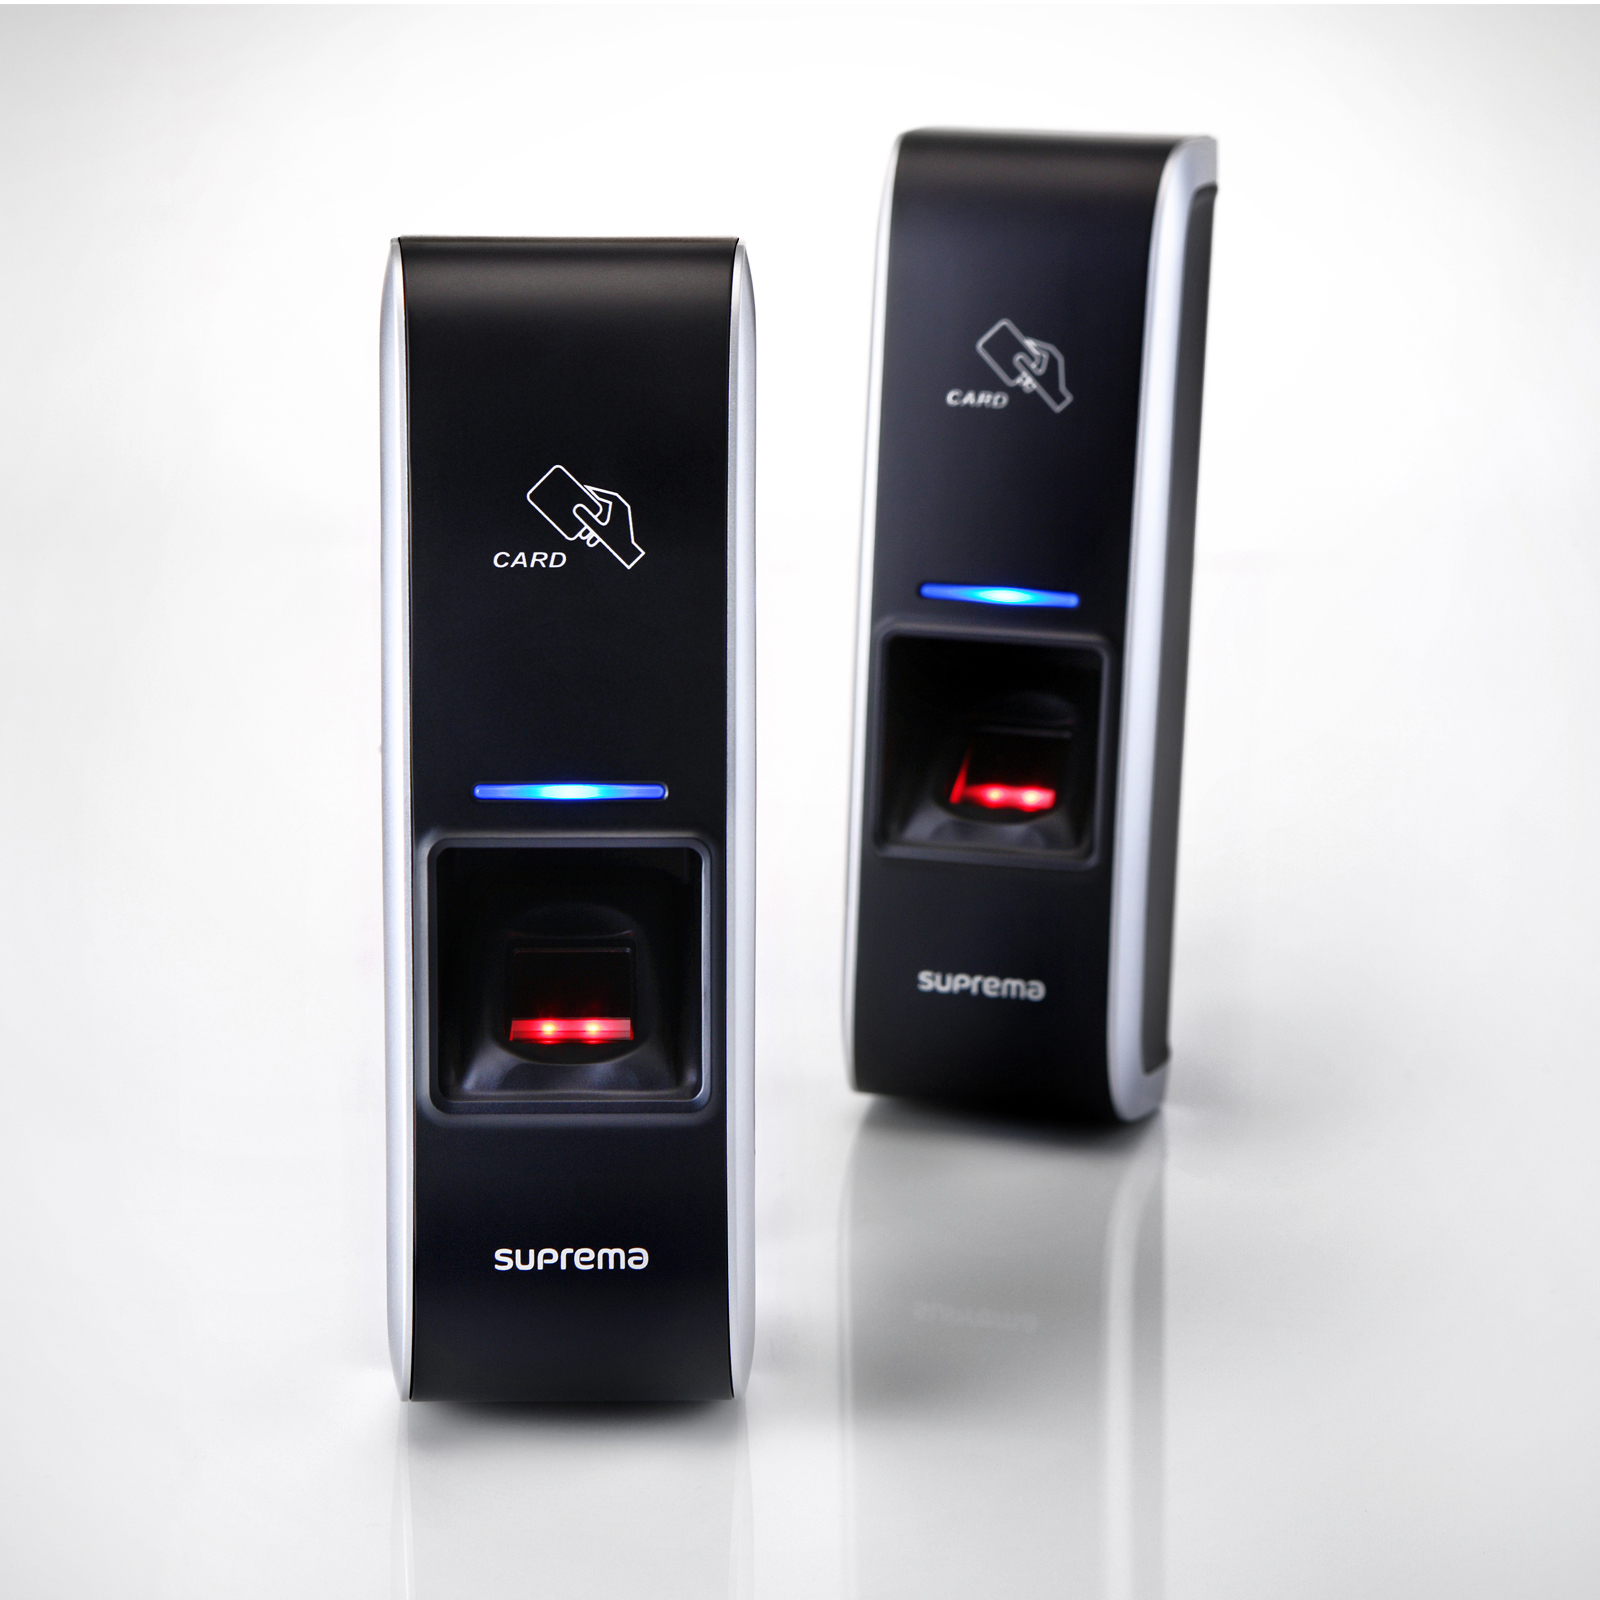 Top Rated Home Security Systems >> New Biometric Reader Makes Security Affordable for North ...